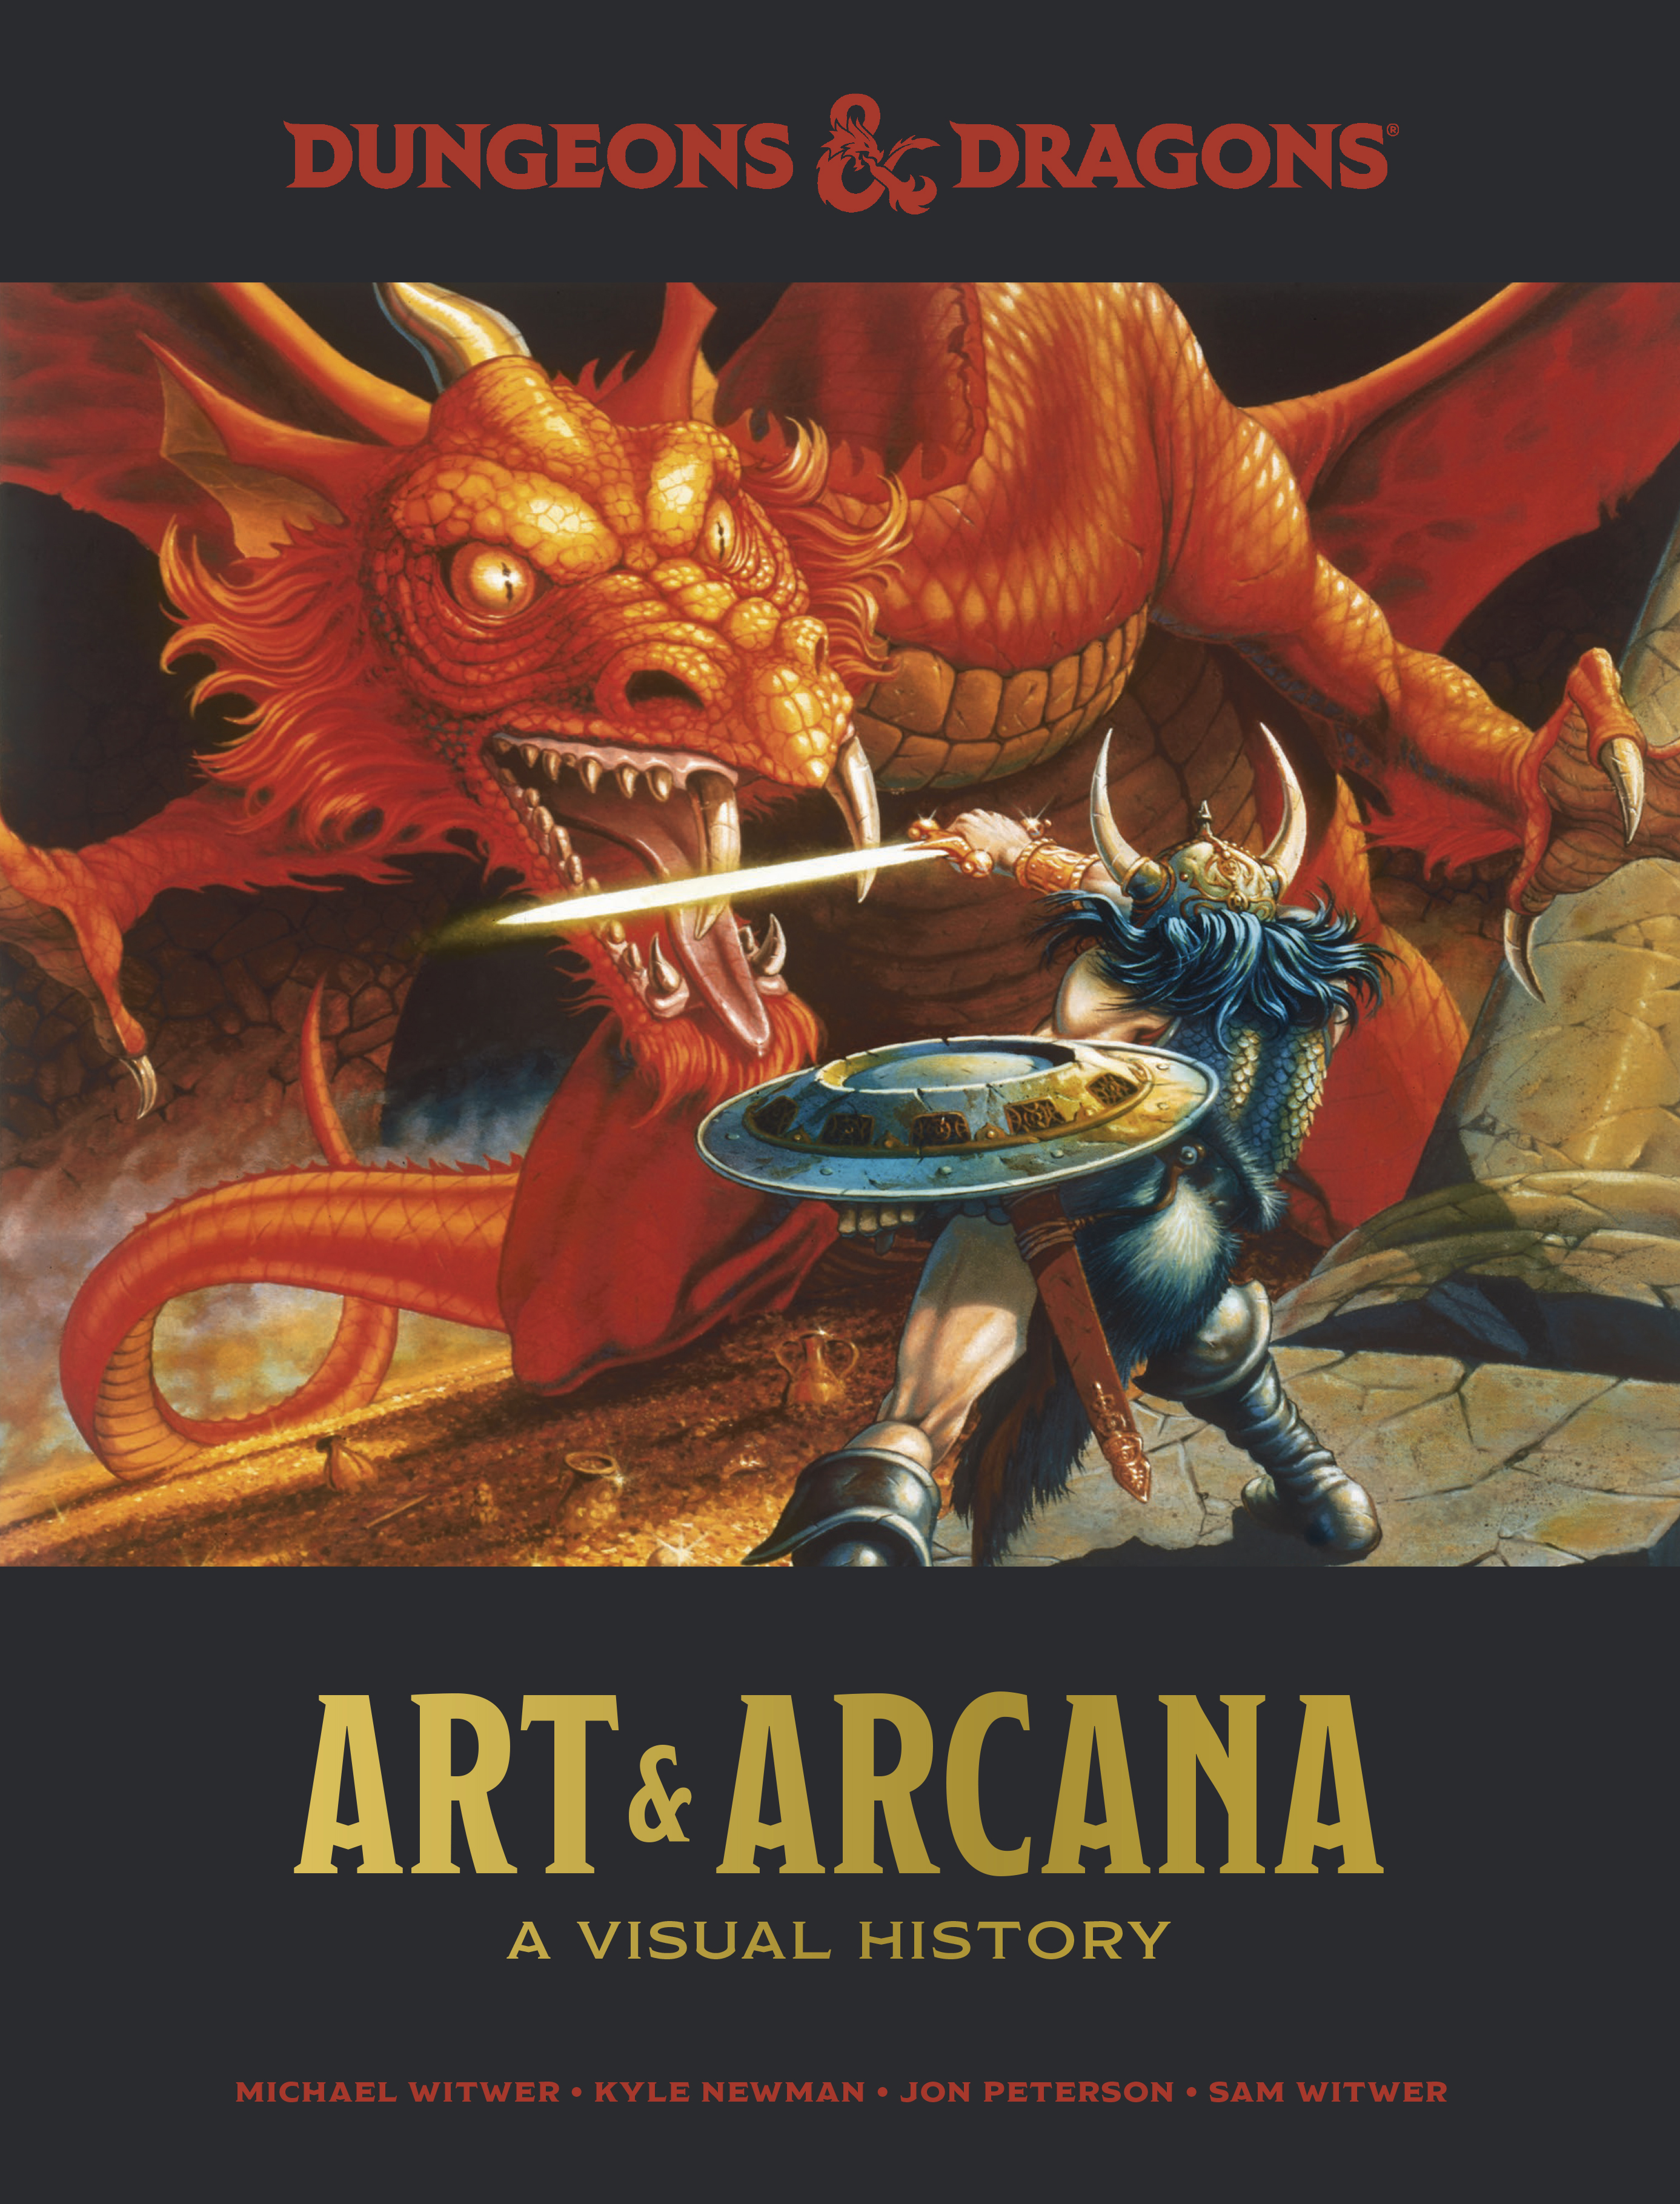 New D&D art book delivers the history of the original role-playing game